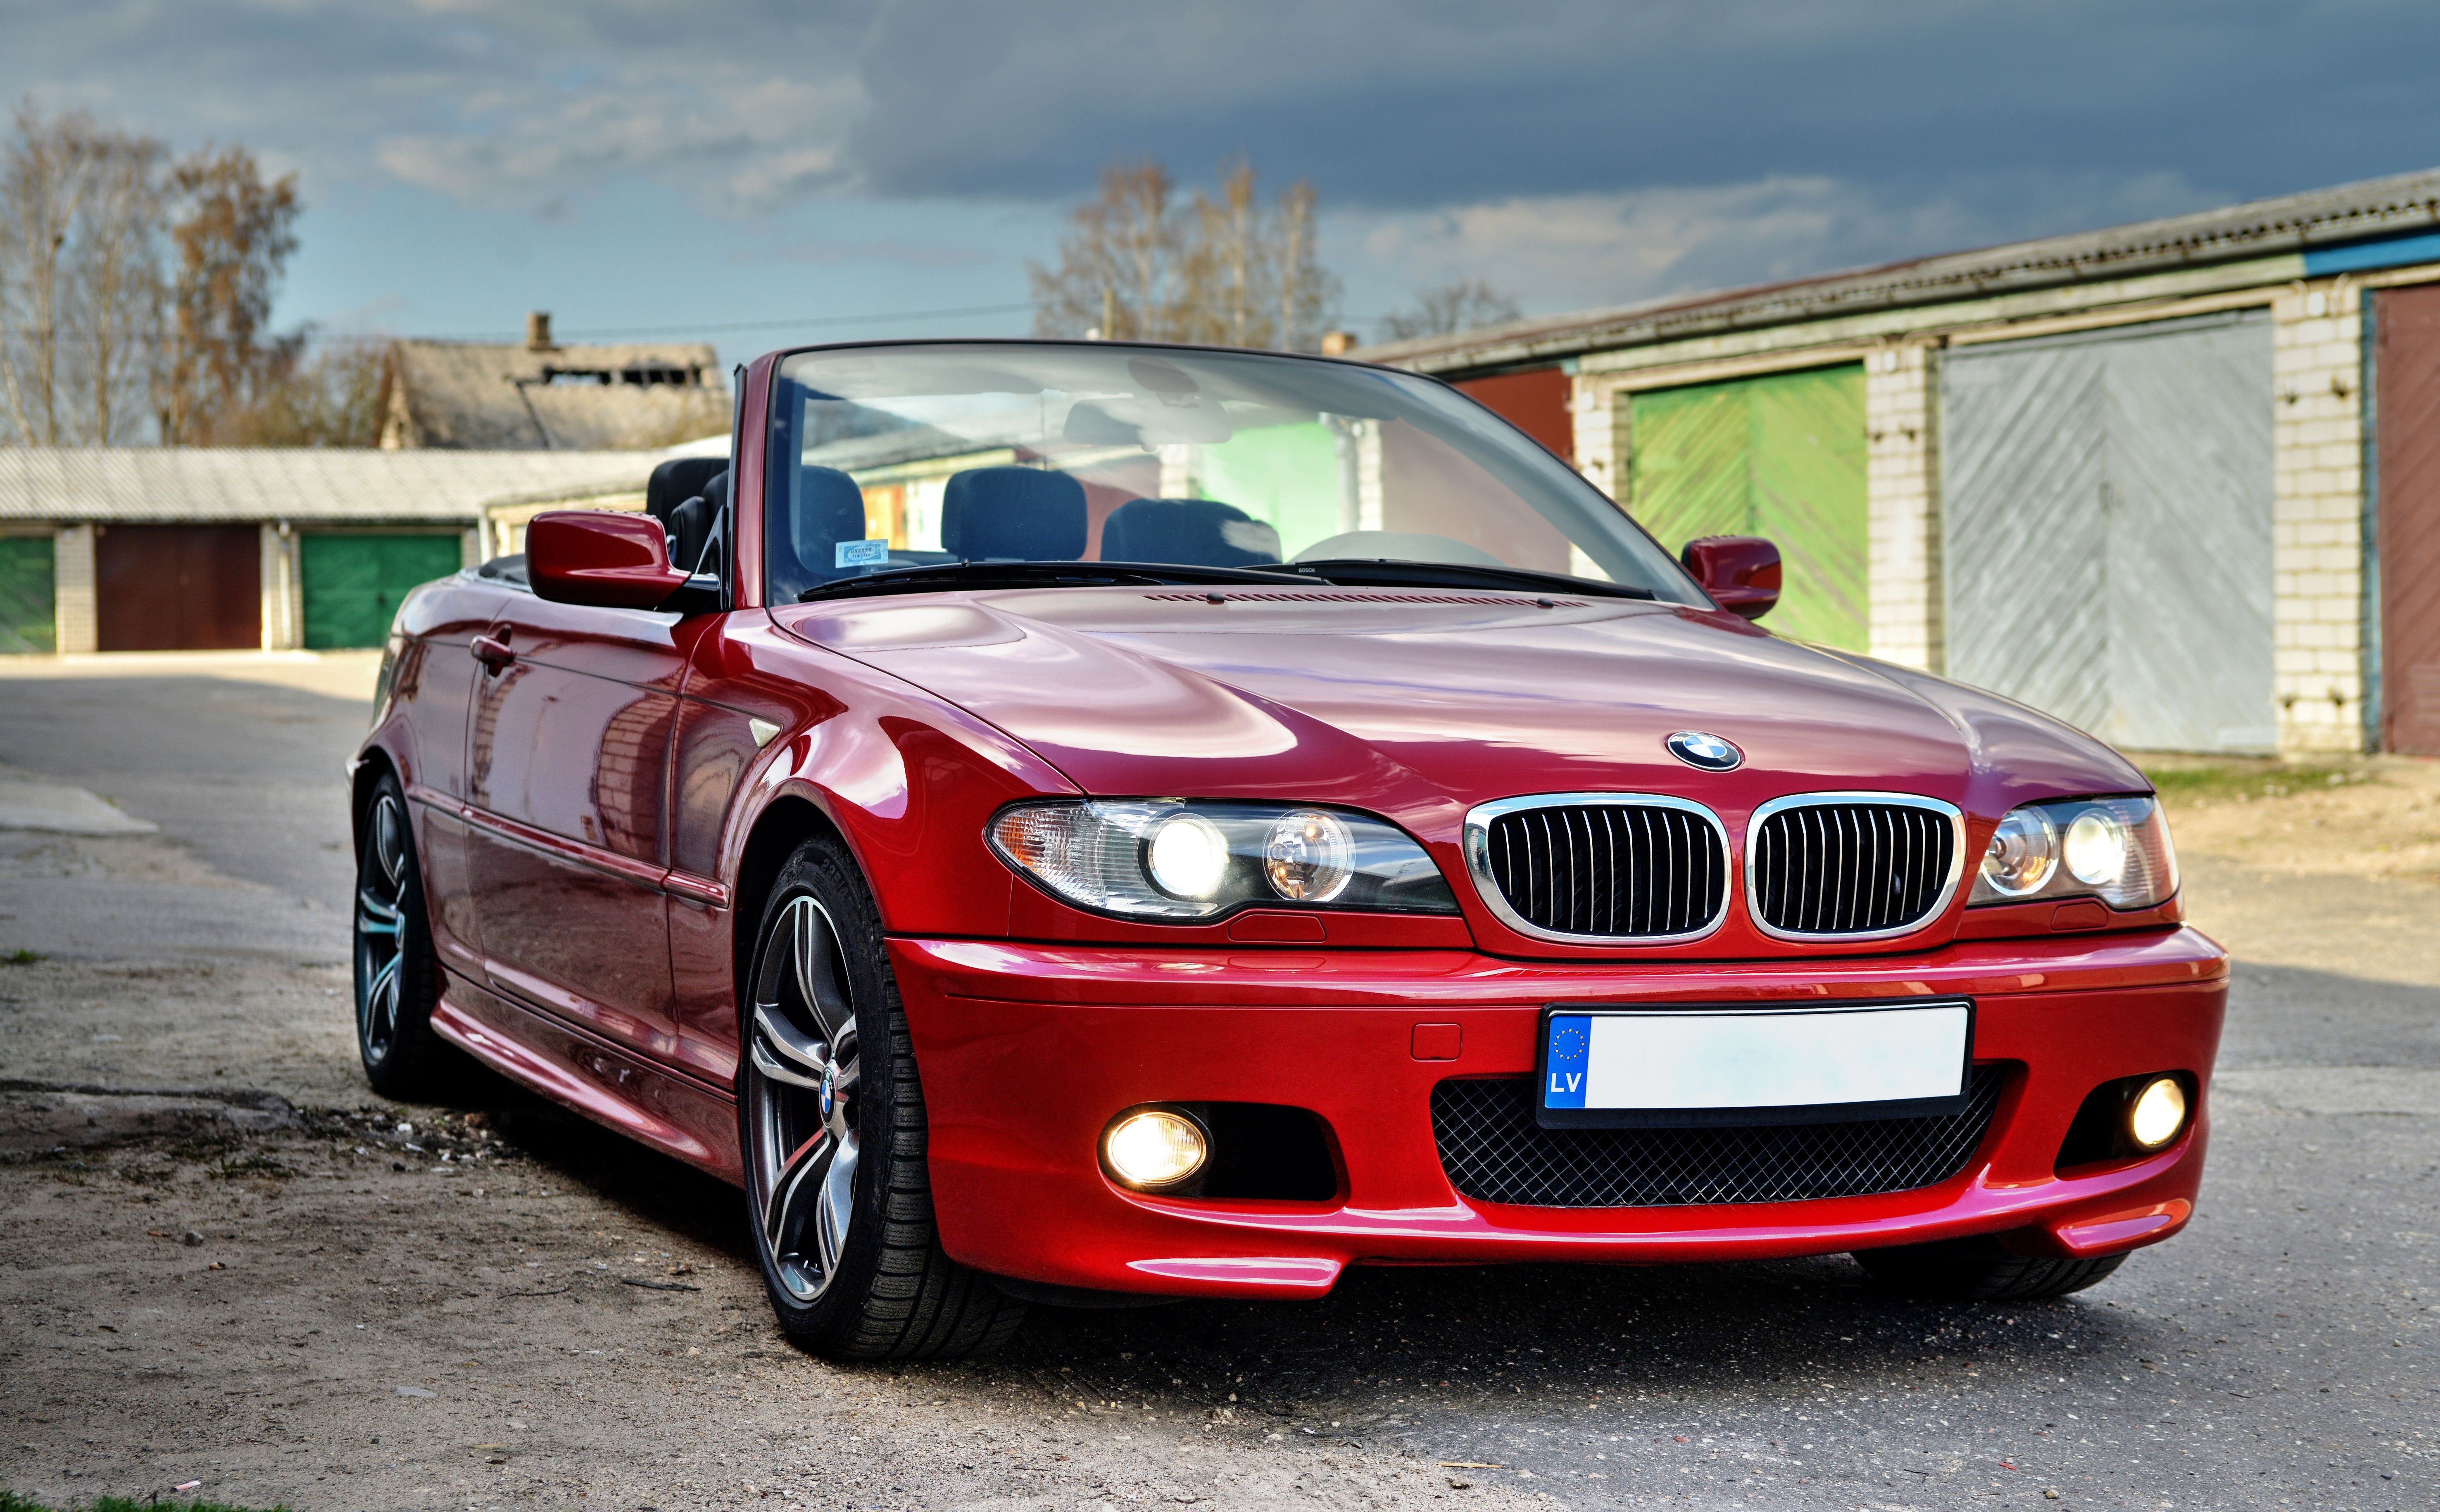 bmw e46 330 convertible m pack imola red ii beautiful. Black Bedroom Furniture Sets. Home Design Ideas